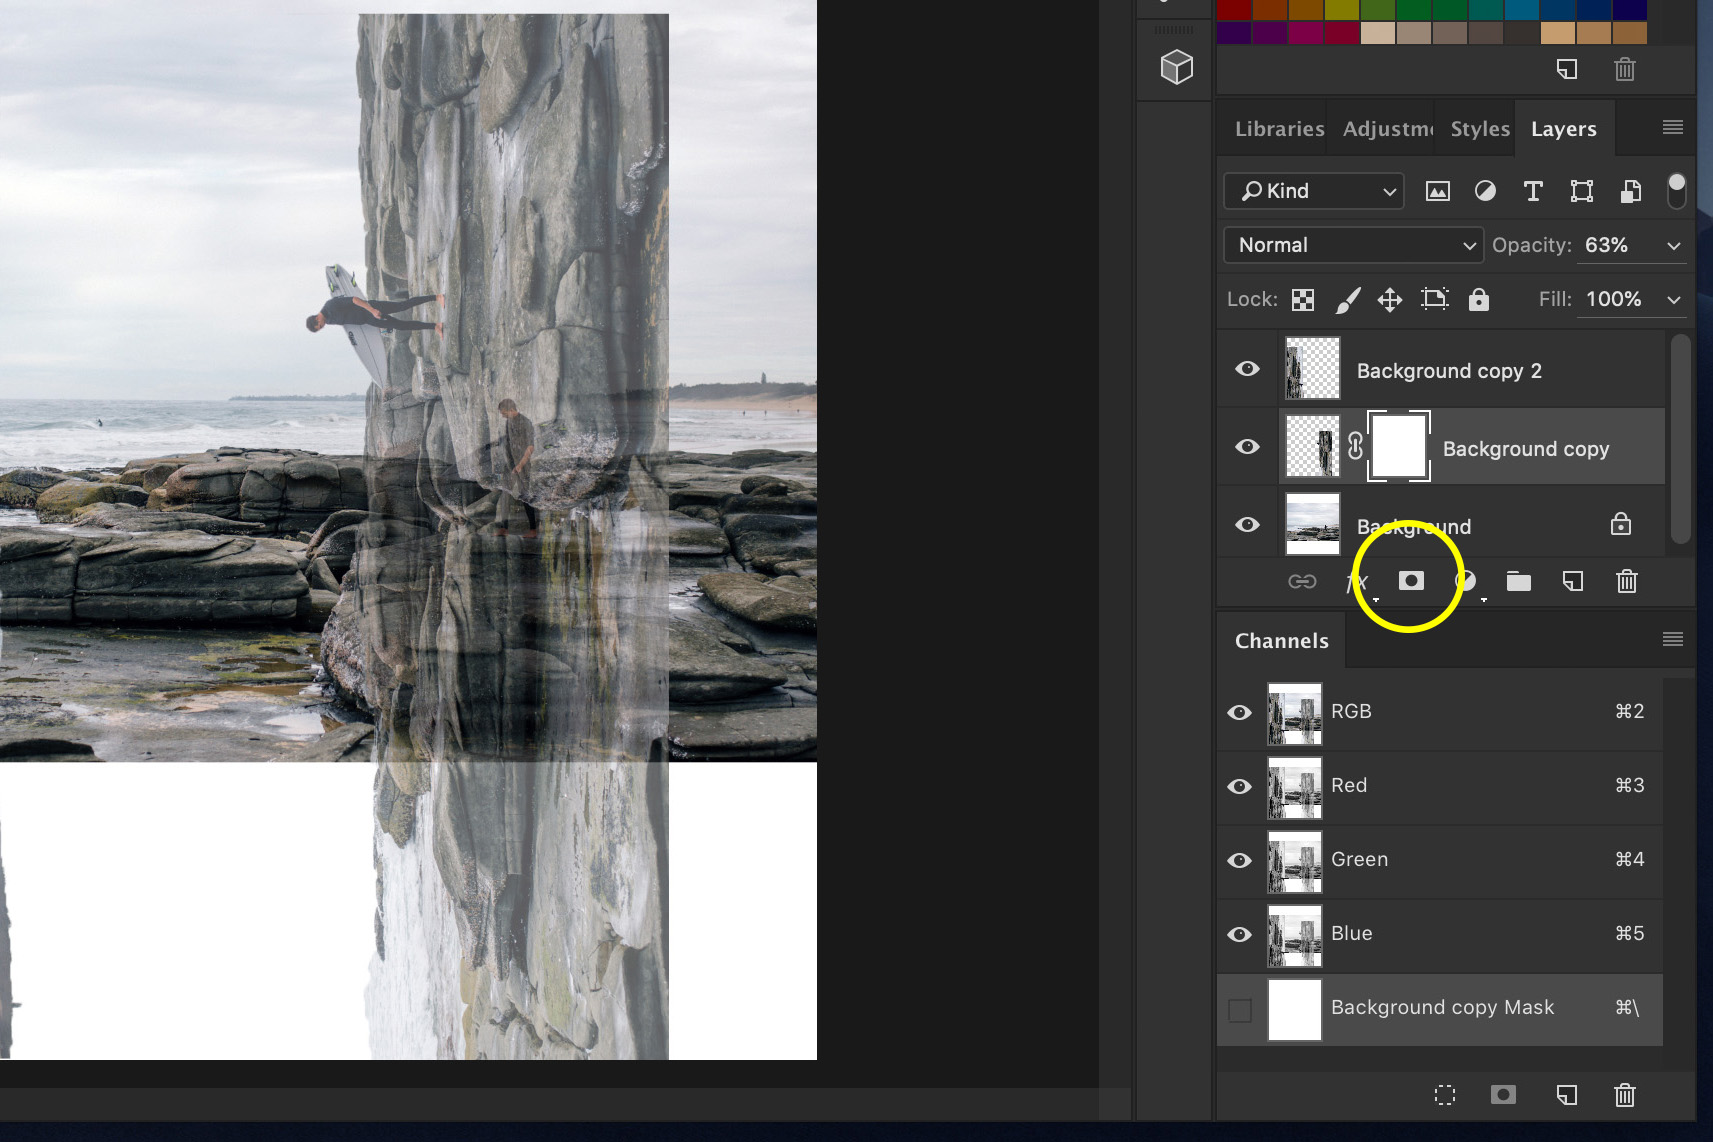 A screenshot showing how to Do a Bend and Warp Trick in Photoshop - creating corners